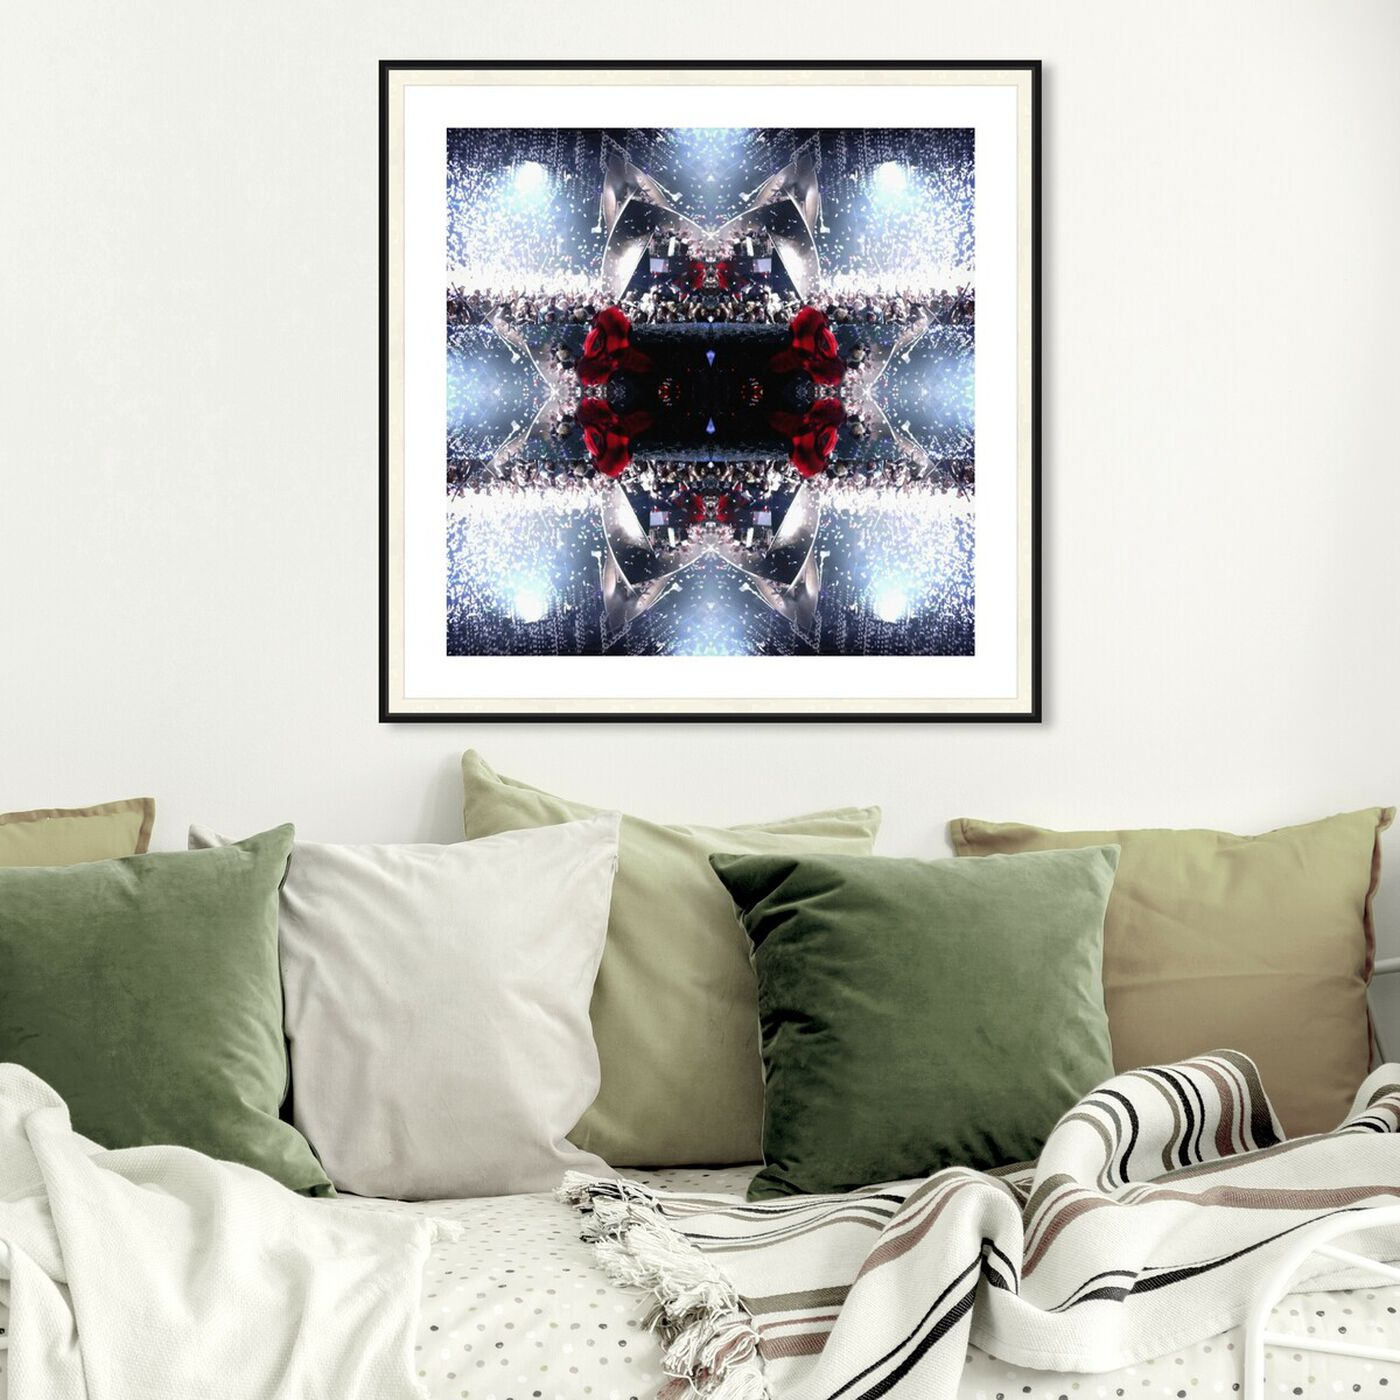 Hanging view of Blooming Disco Nights featuring abstract and textures art.